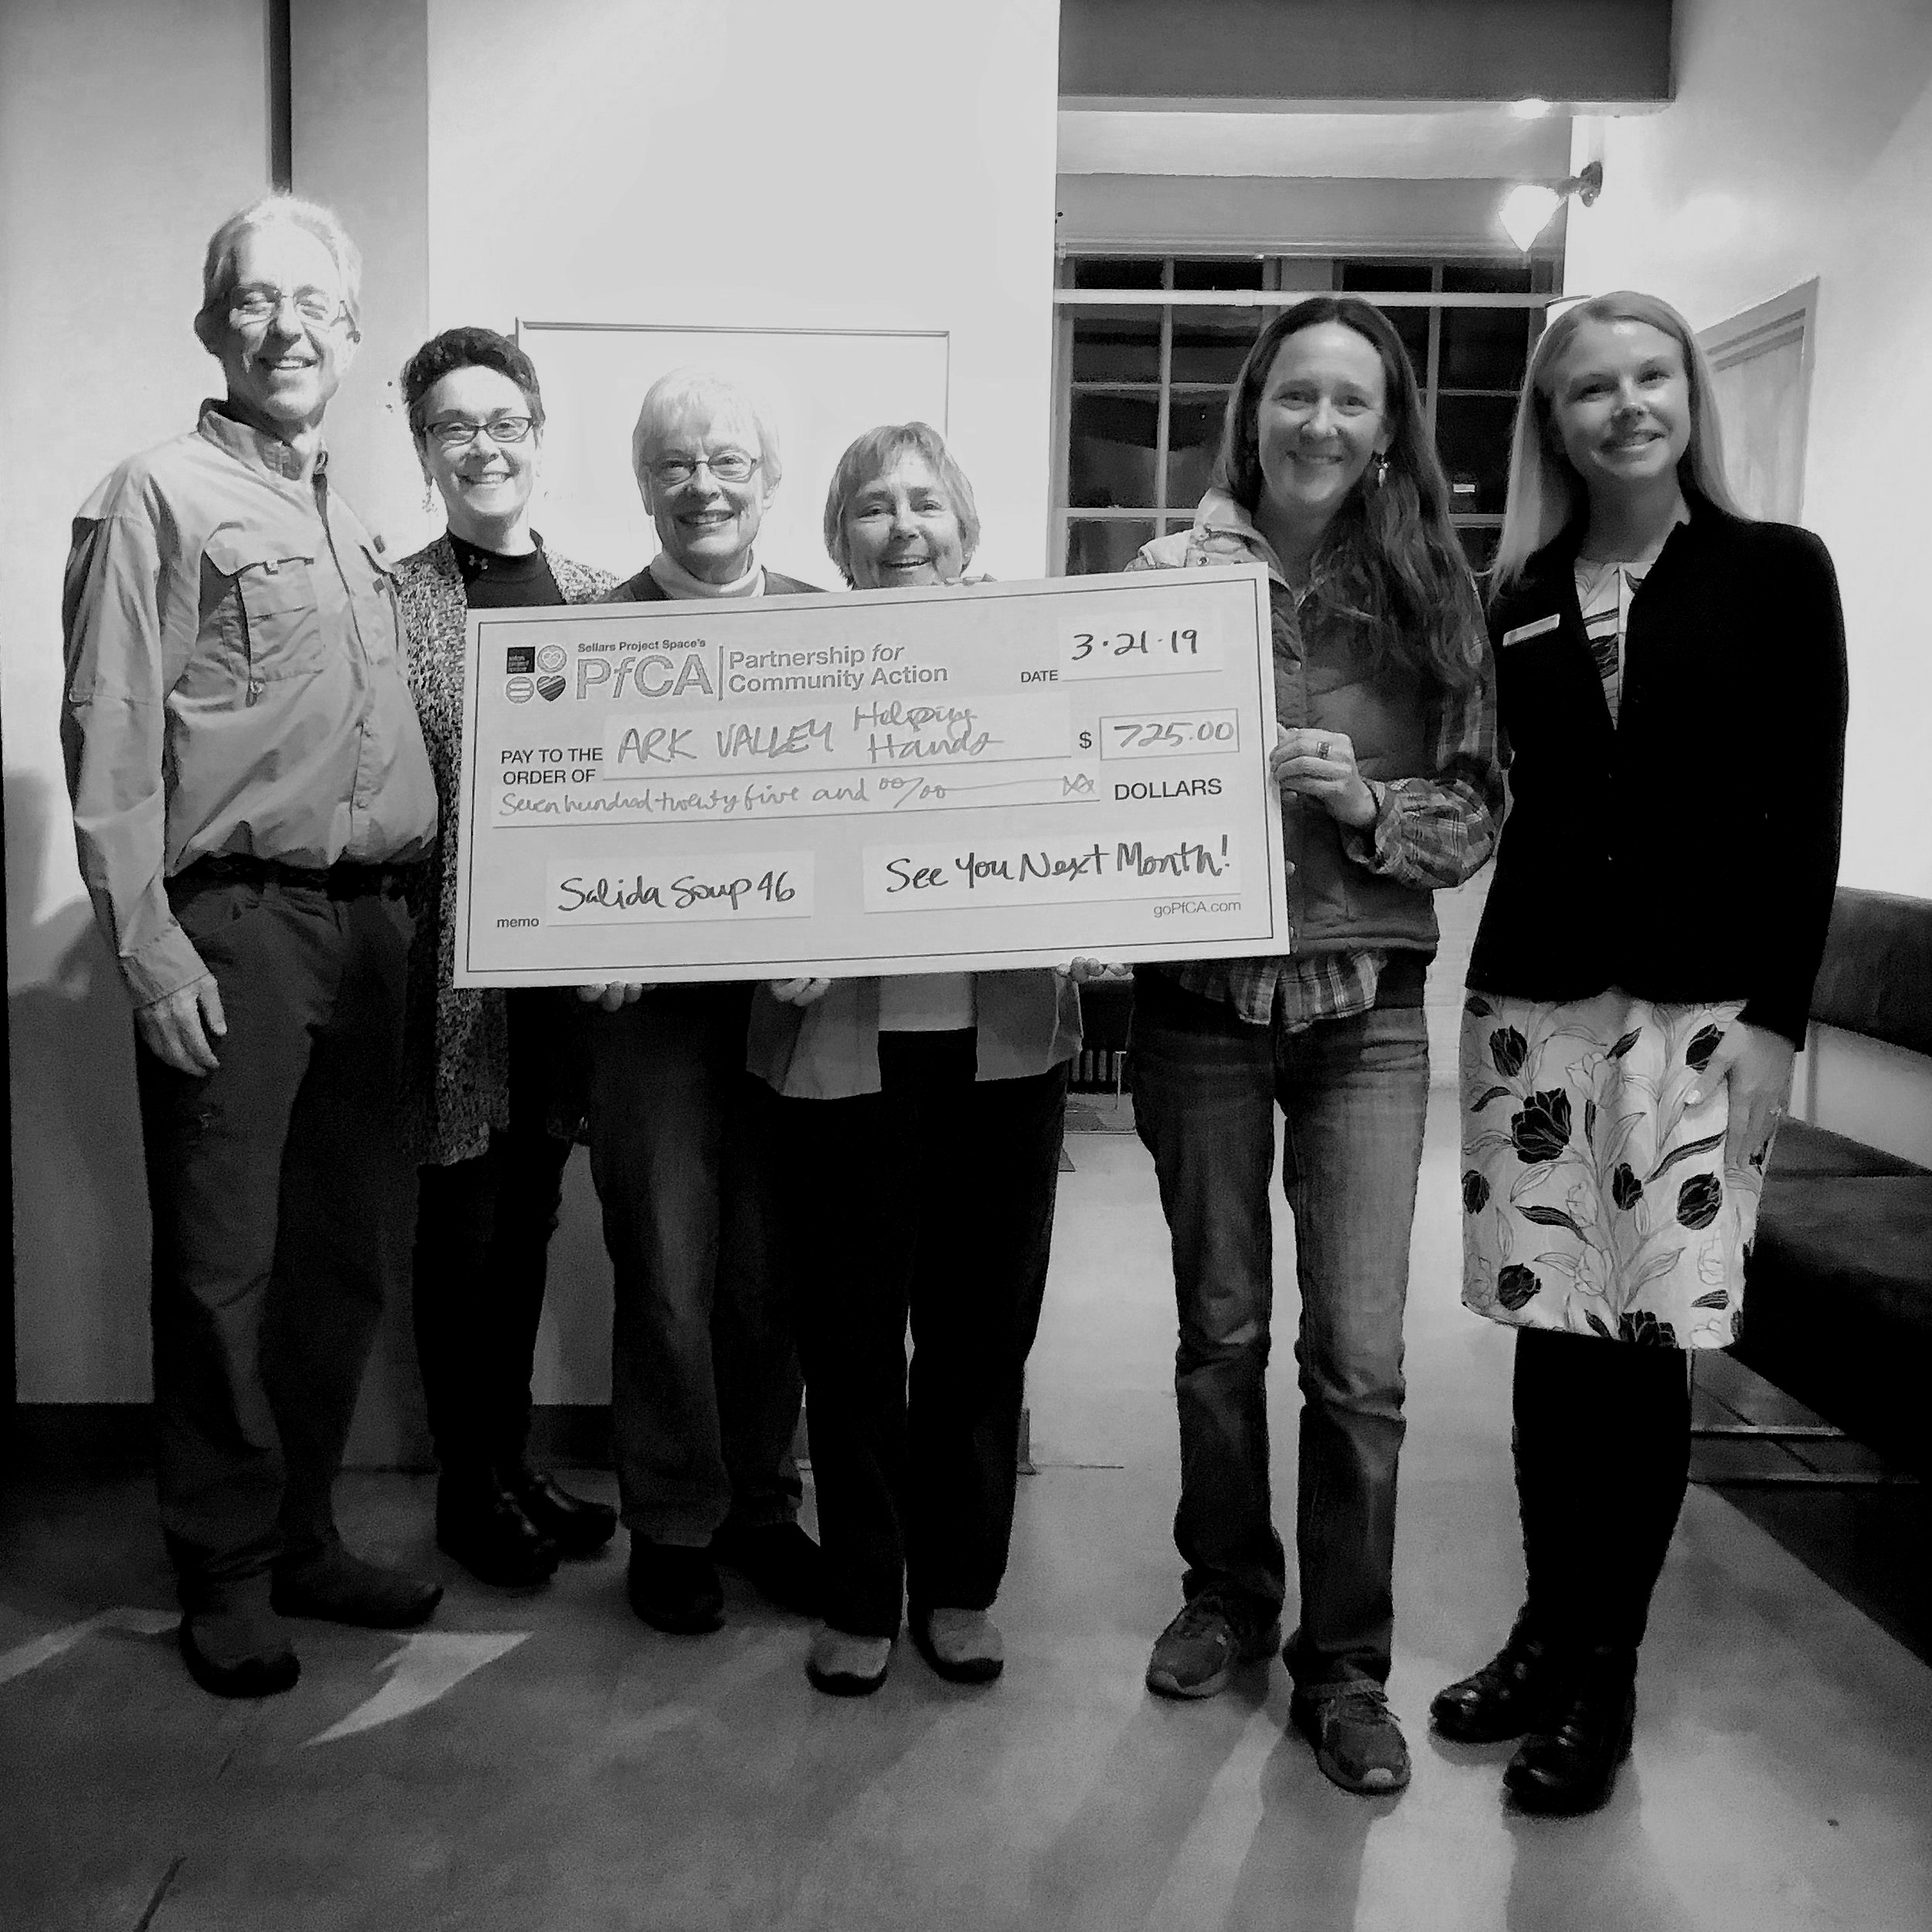 AVHH Members pose with the Big Check after winning Salida Soup 46. From left: Dr. Tom Syzek, Leslie Matthews, Marilyn Bouldin, Dee Dubin, Sara Ward, and Andrea Carlstrom.